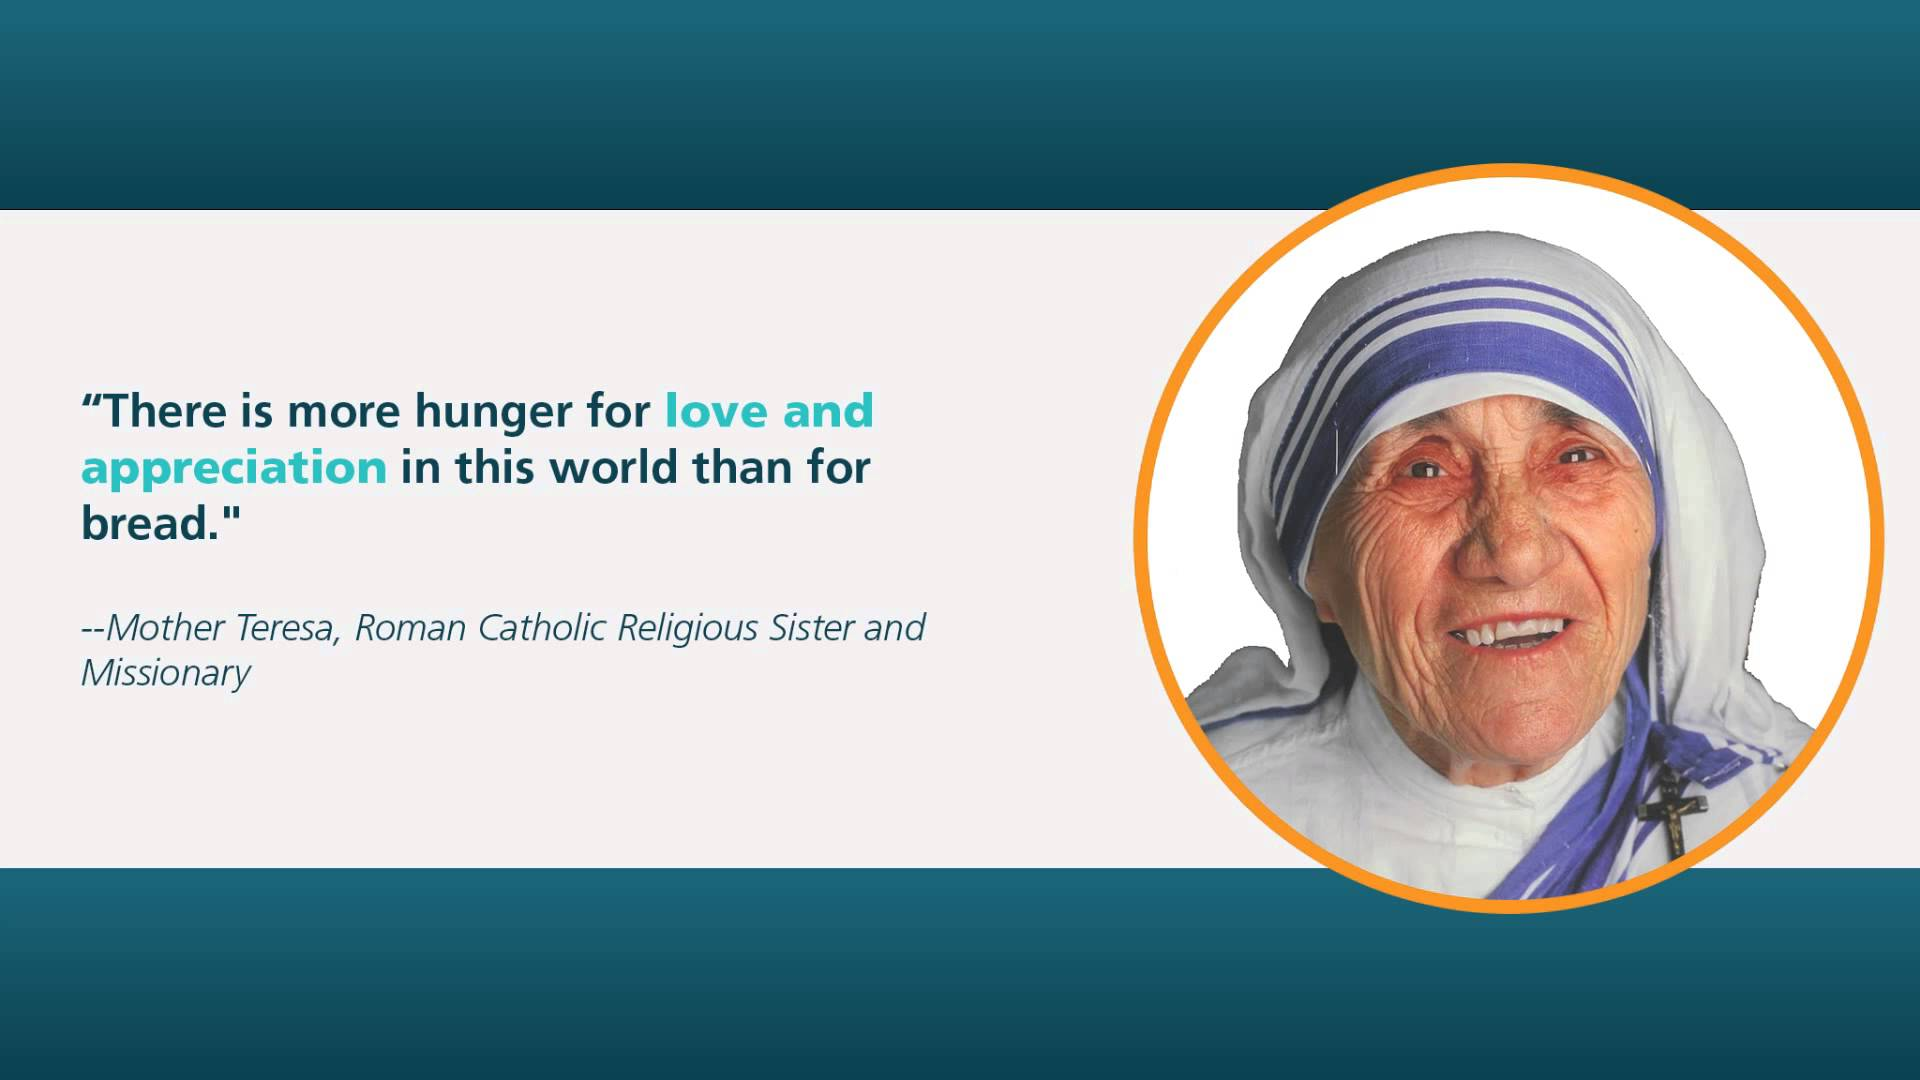 A13 recognition quotes - There is more hunger for love and appreciation in this world than for bread. - Mother Teresa